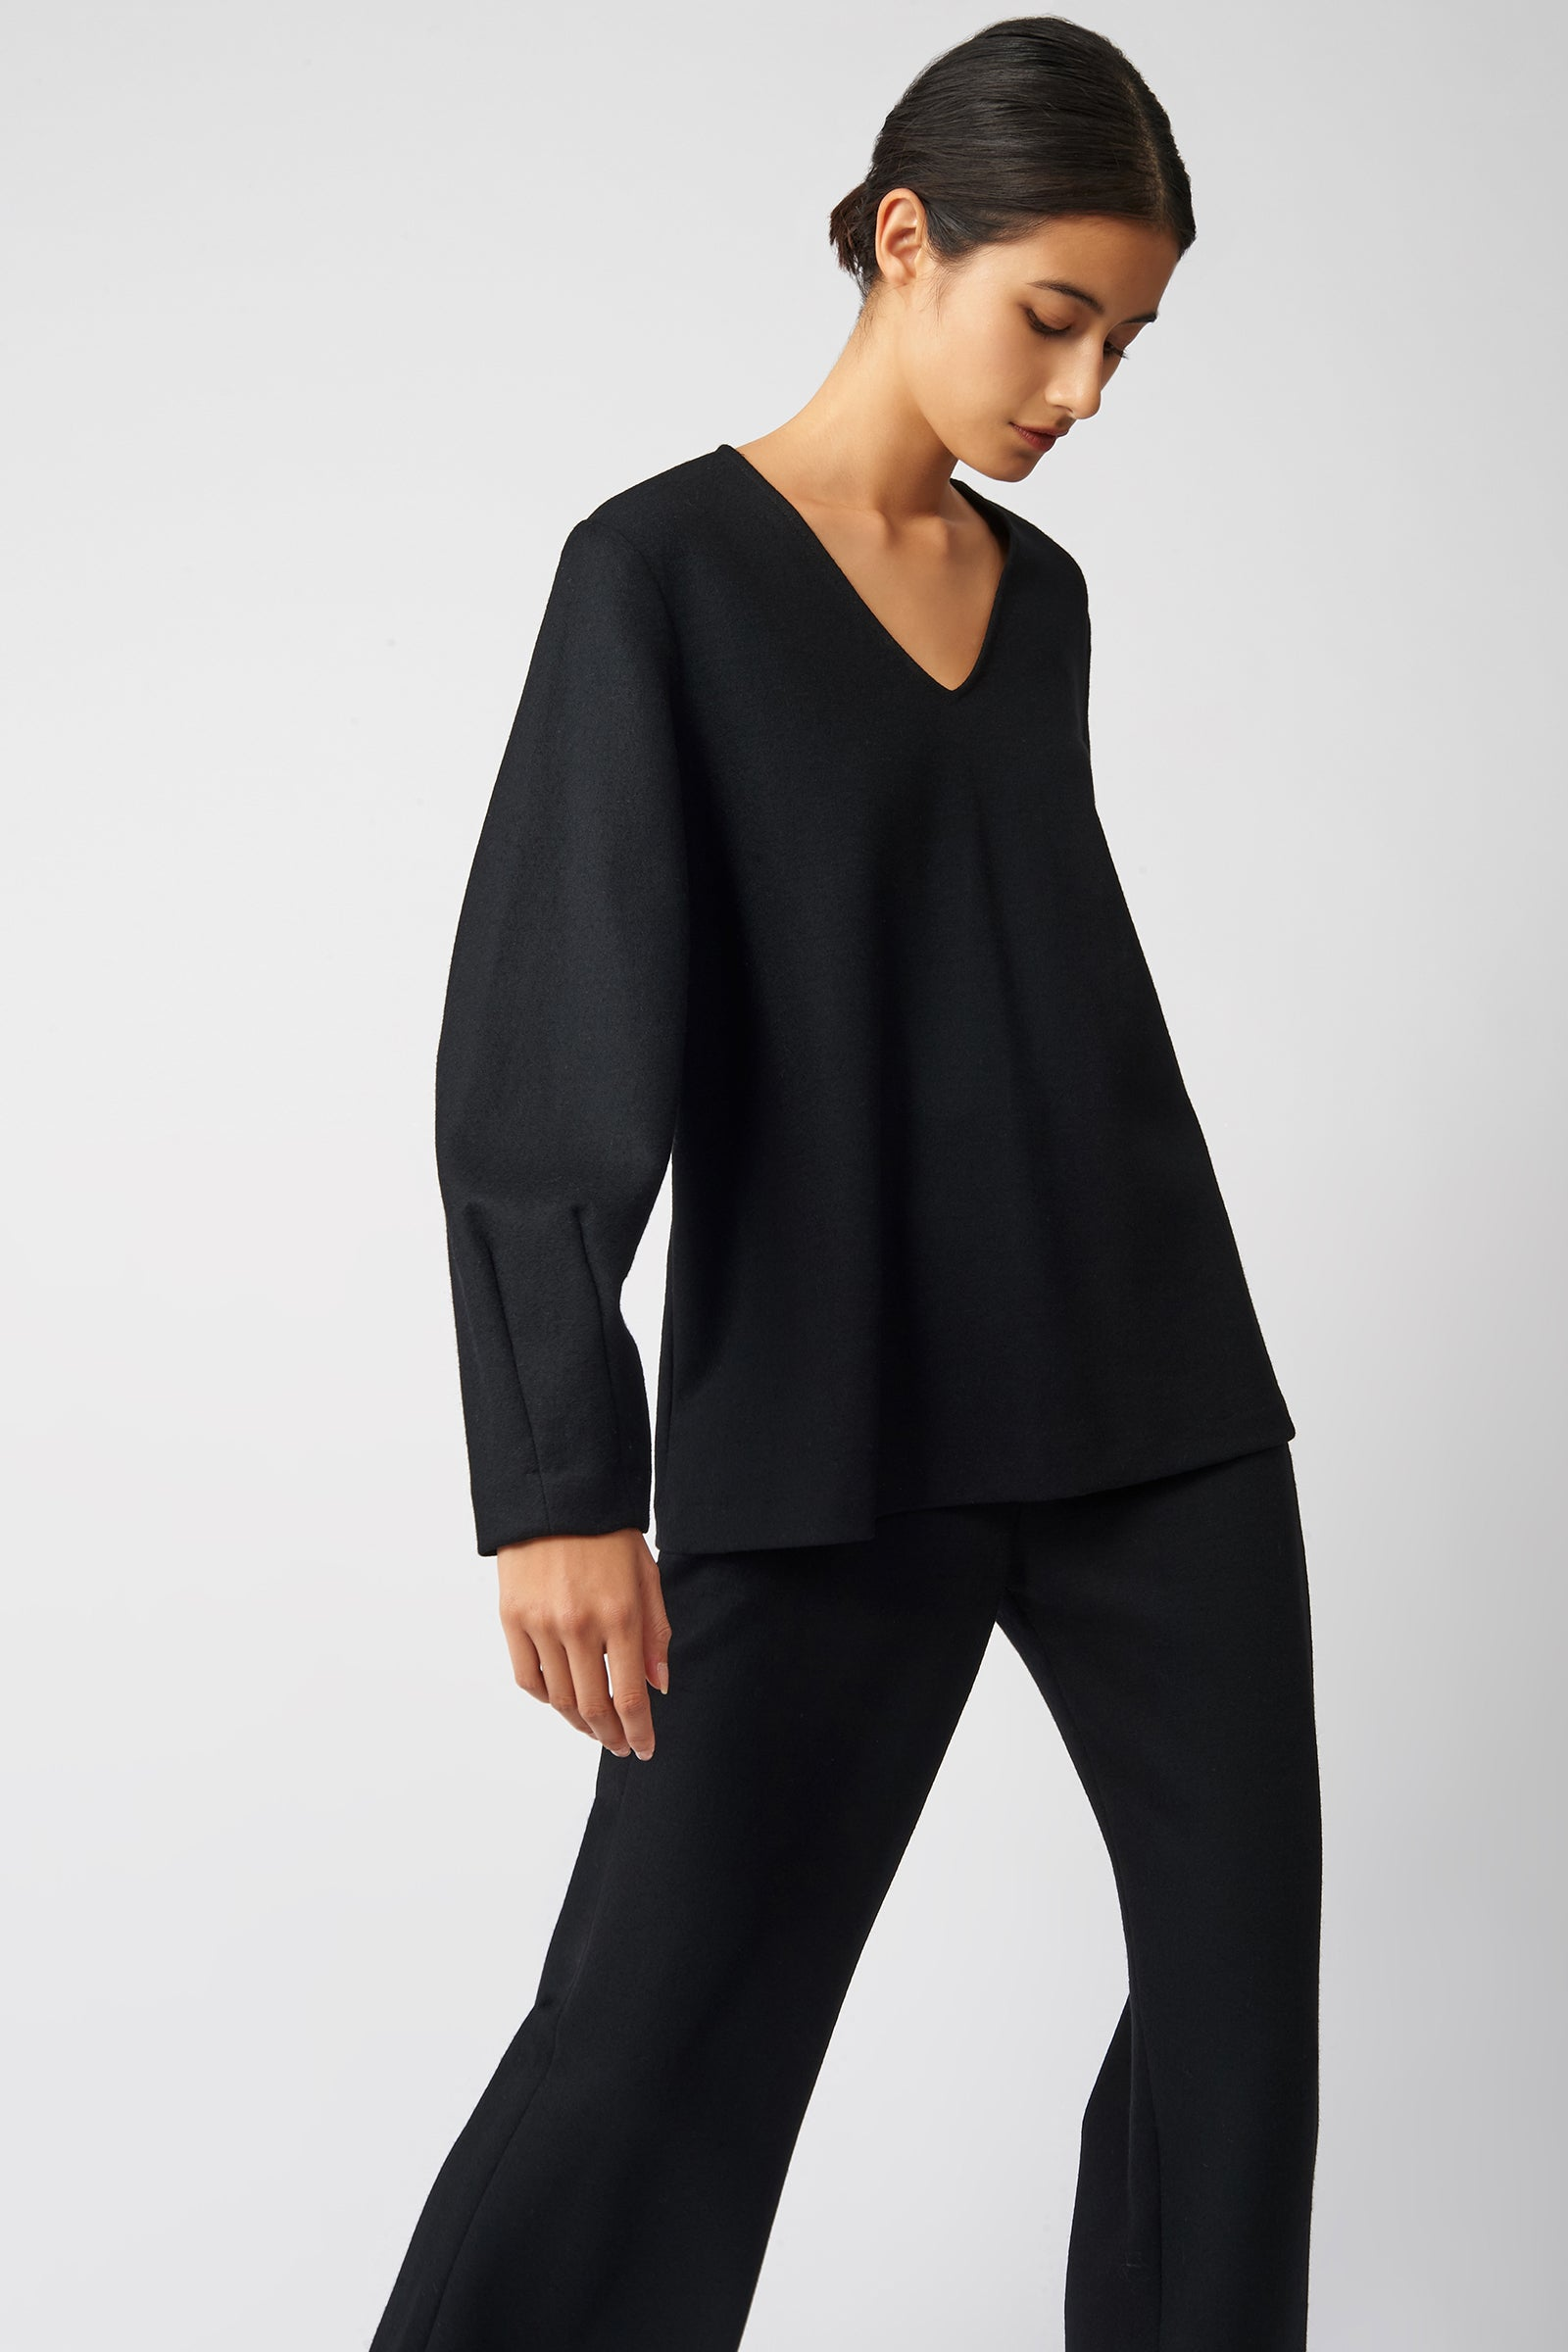 Kal Rieman V Neck Swing Top in Black on Model Side View